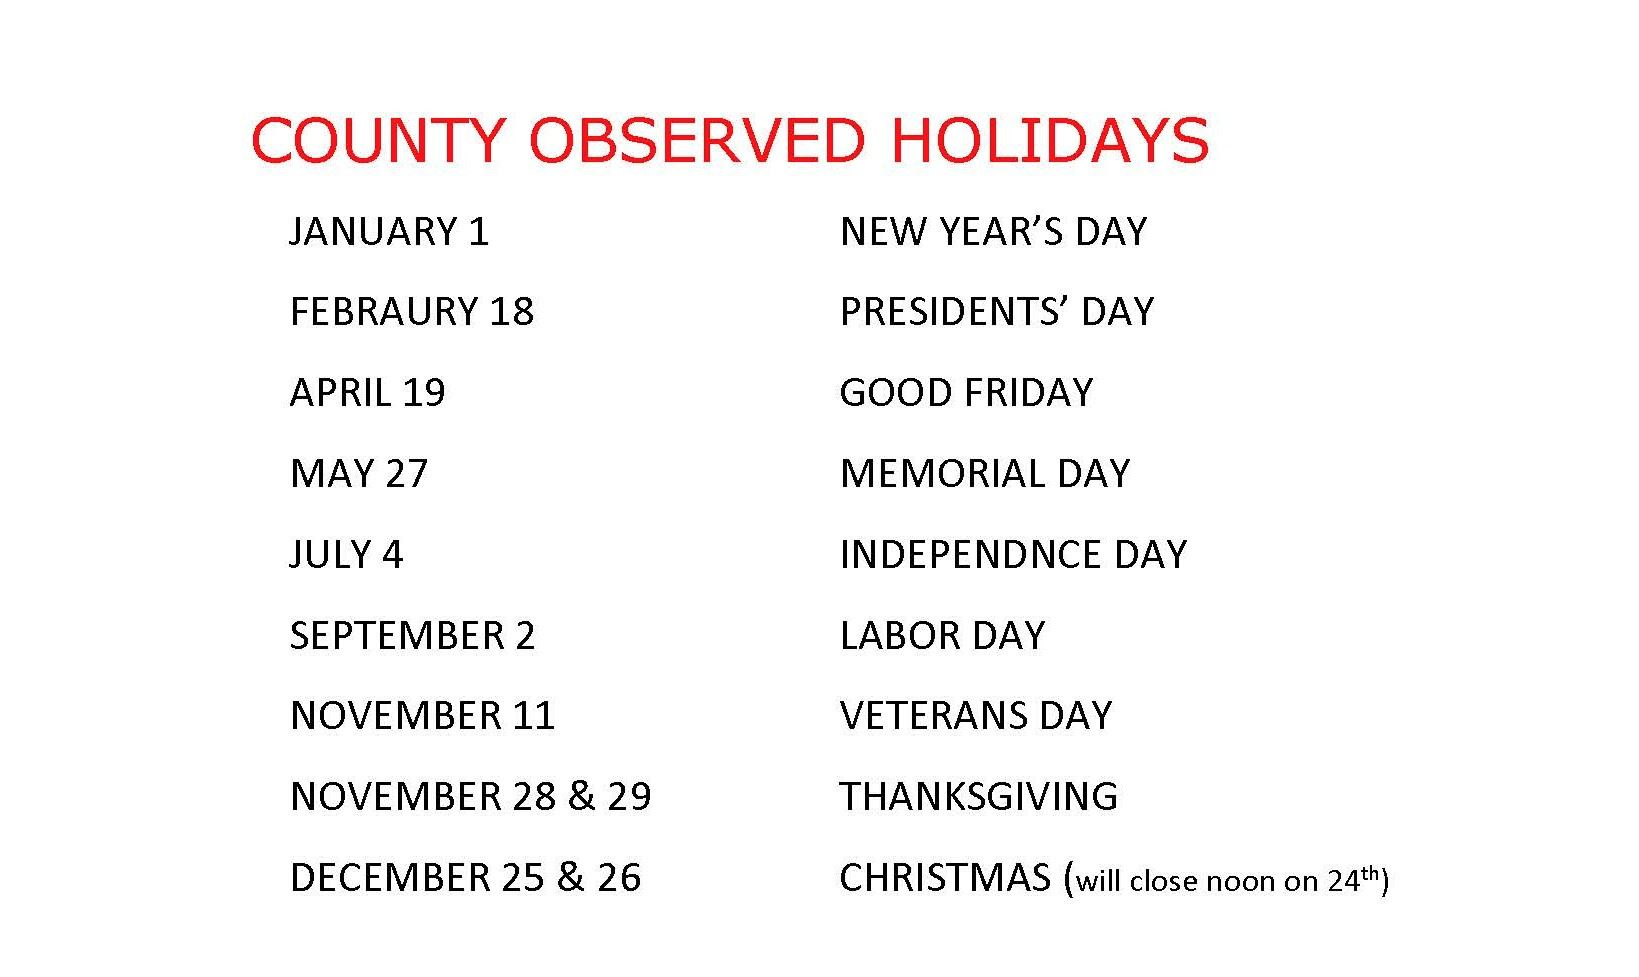 2019 COUNTY OBSERVED HOLIDAYS